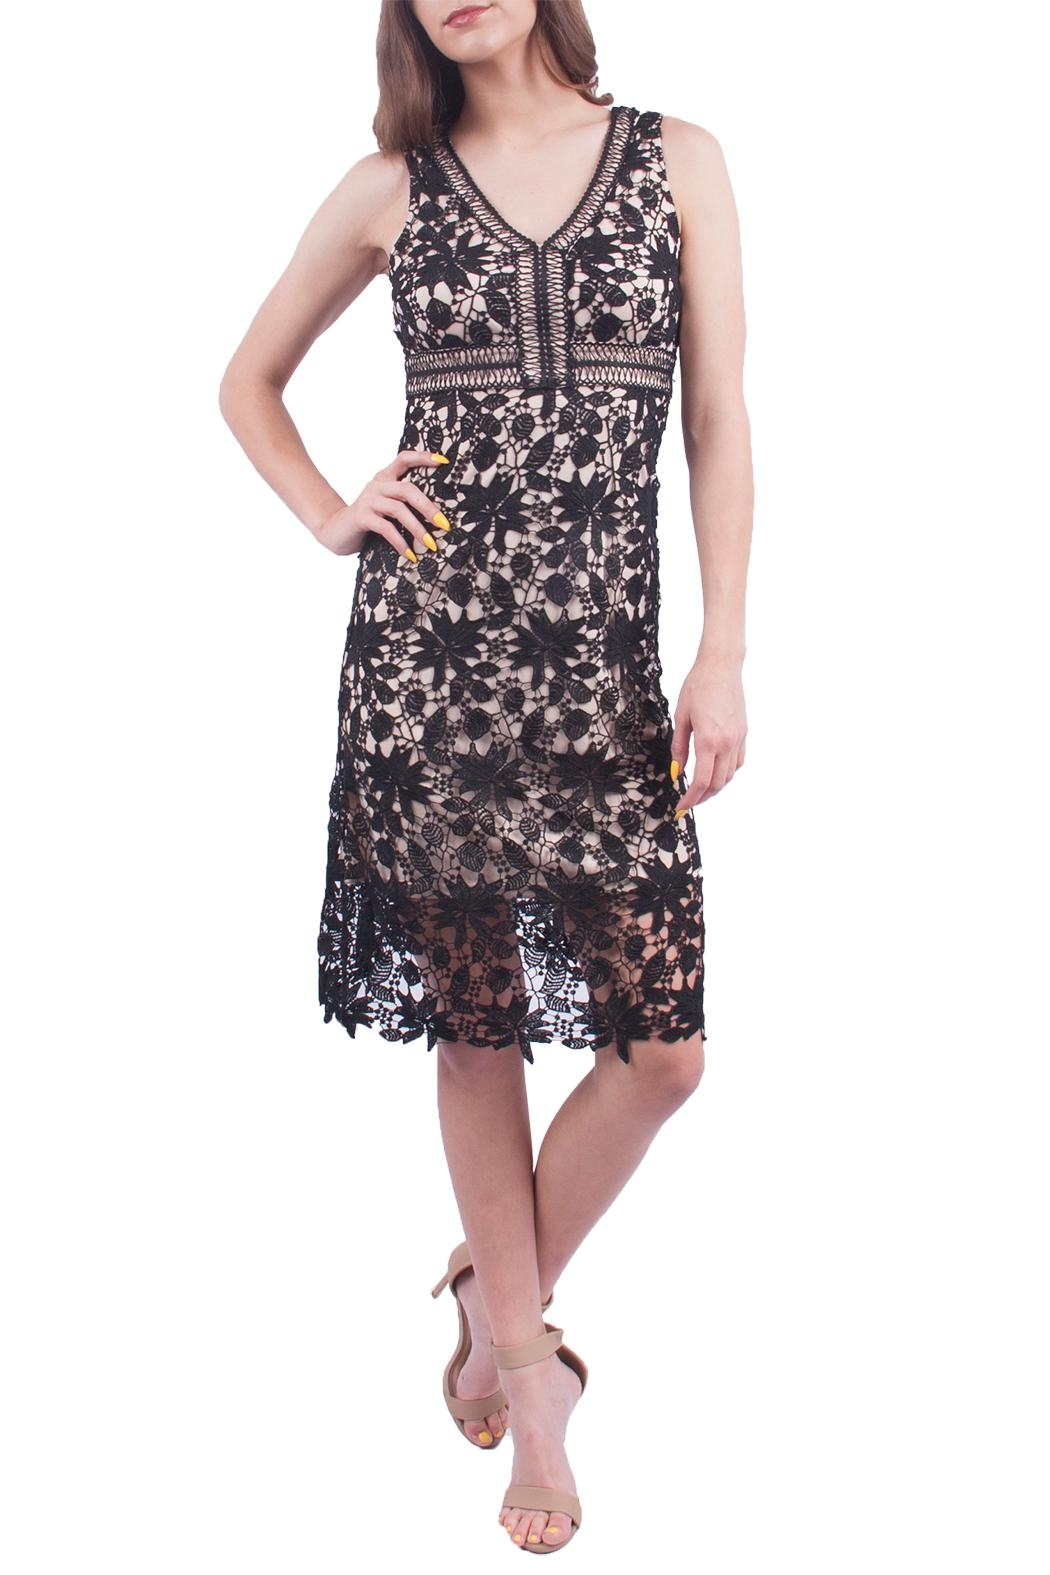 Soprano Black Crochet Midi Dress - Main Image